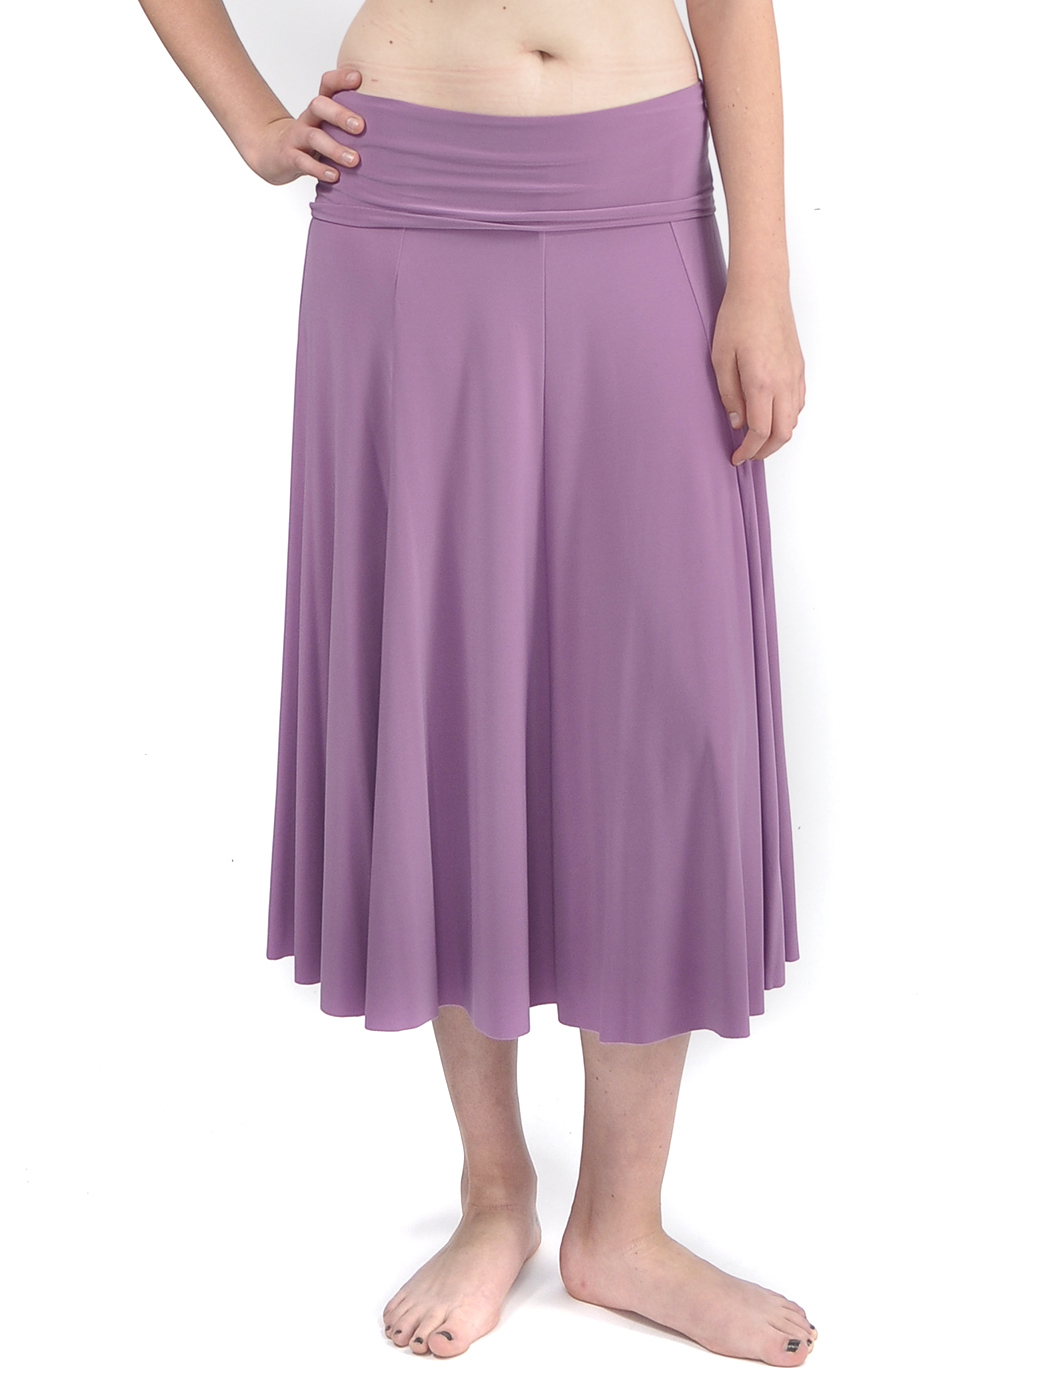 max maxi skirt strapless dress convertible foldover